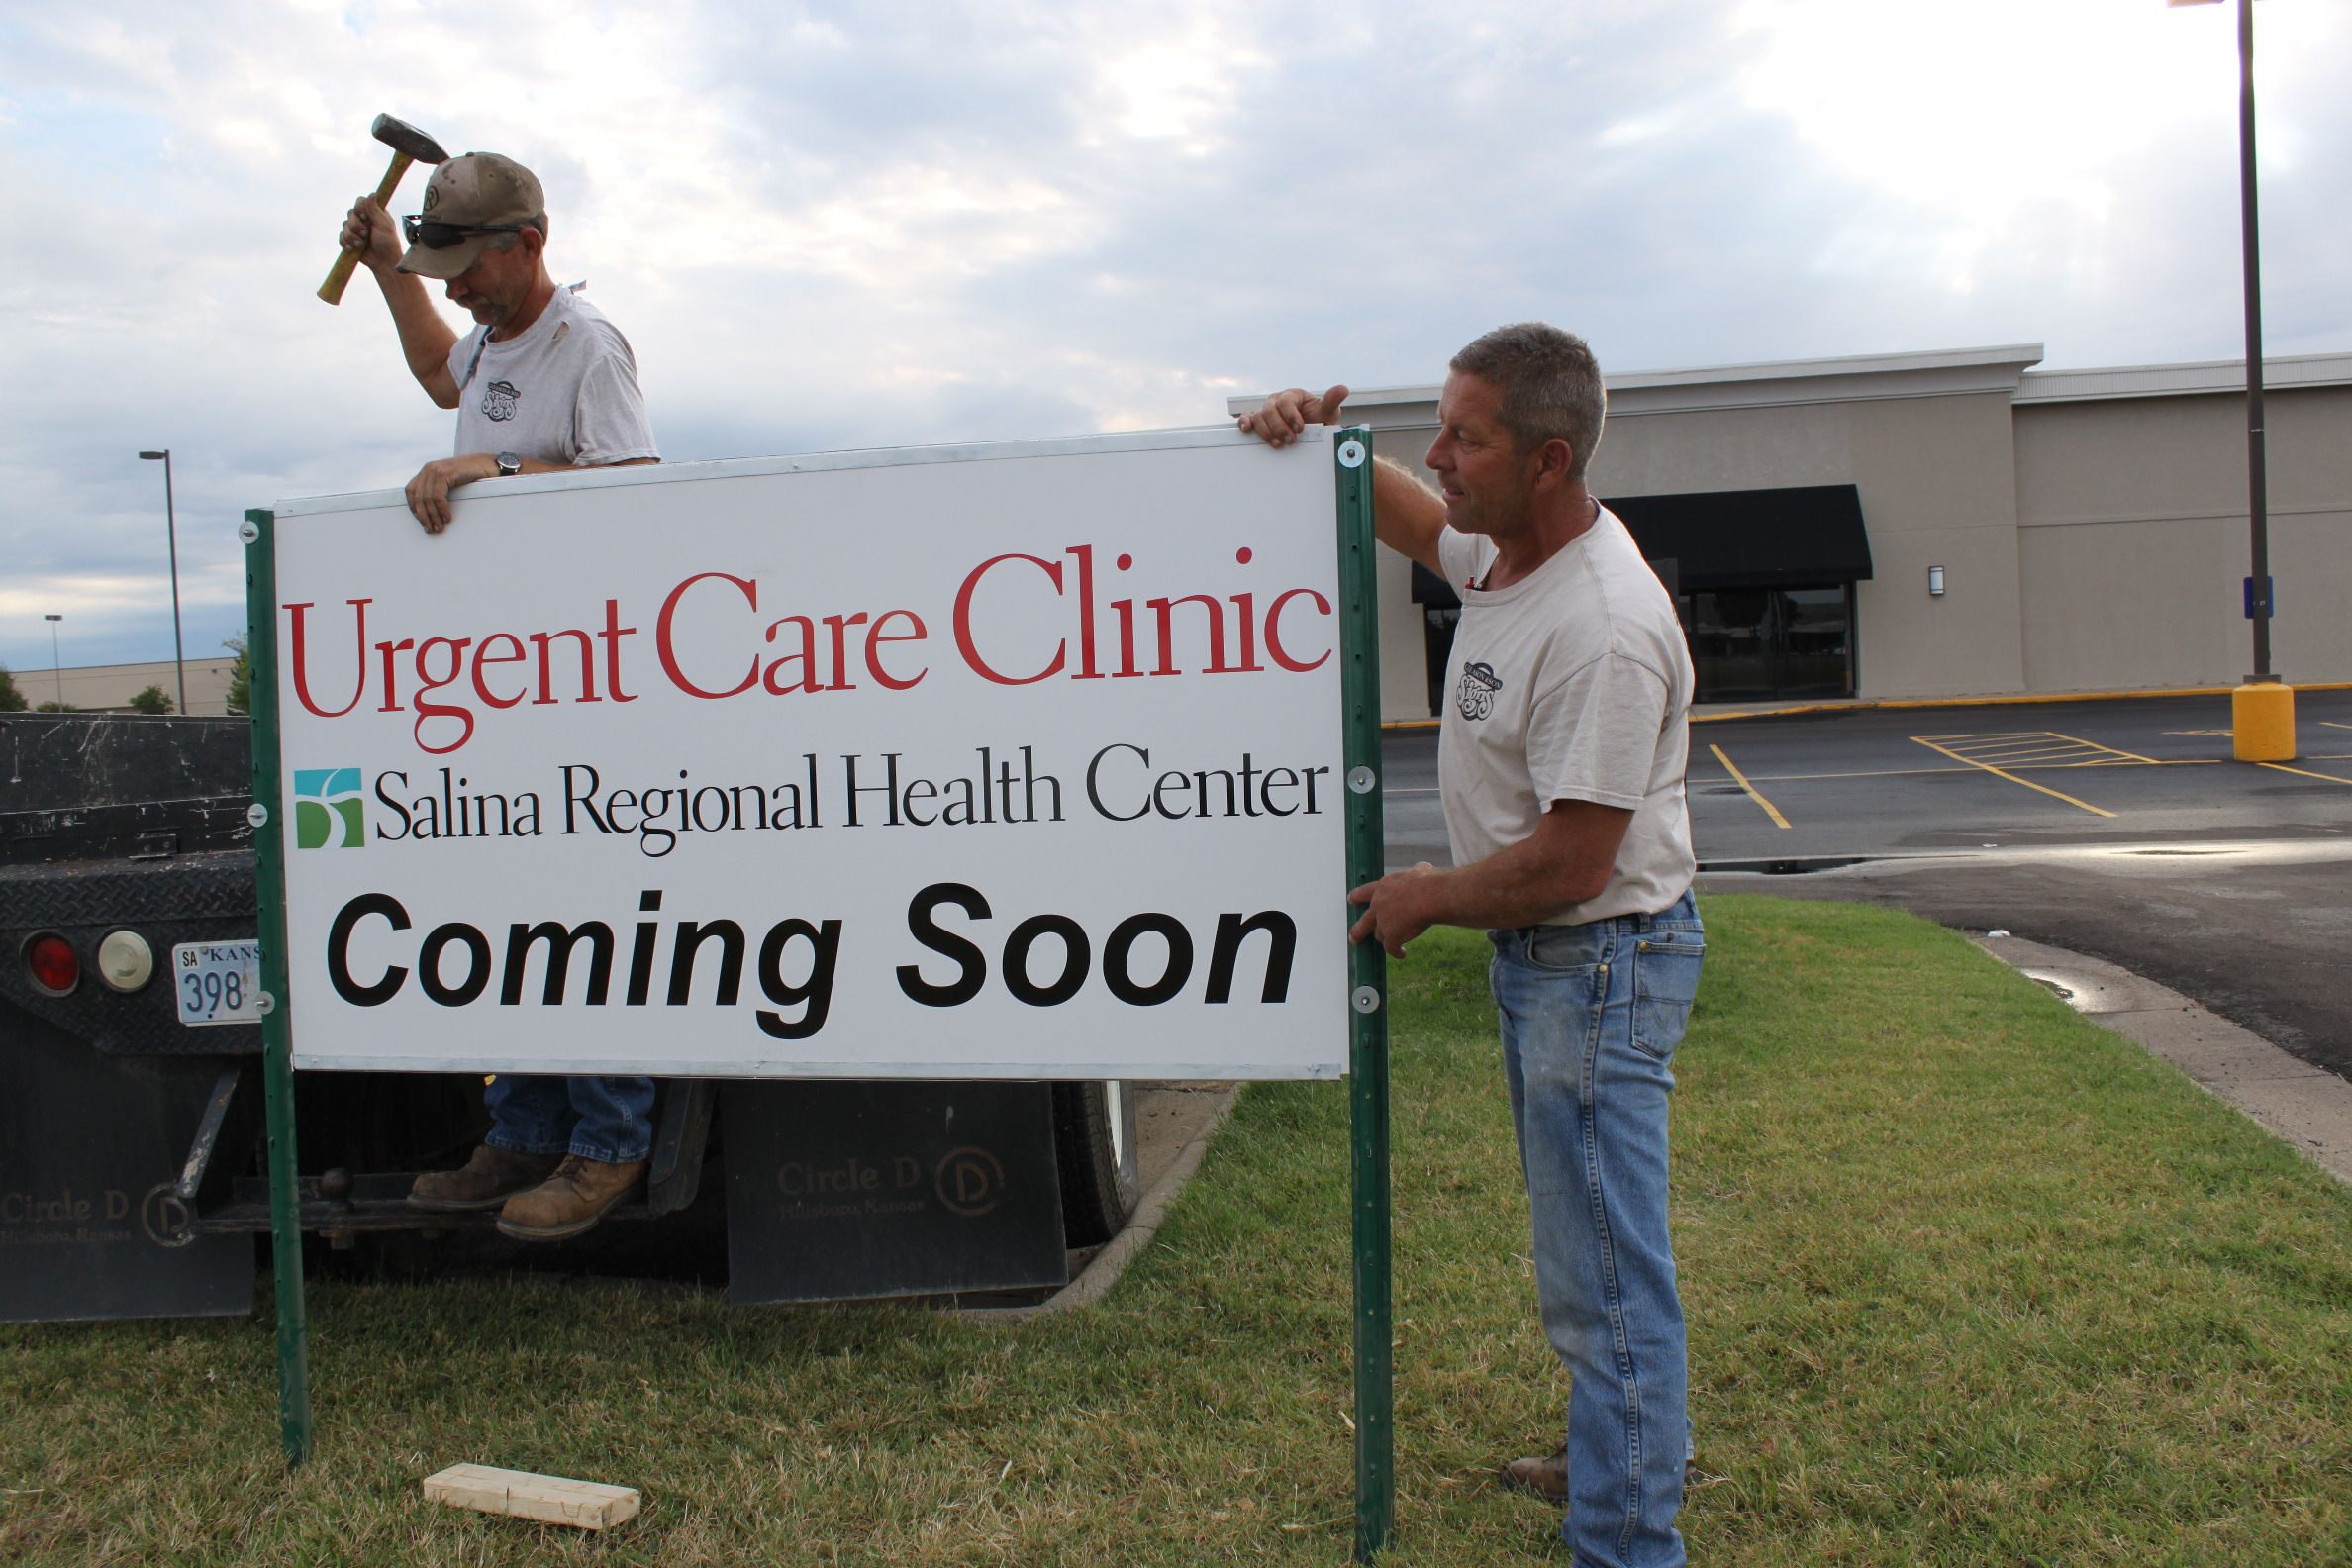 Hospital To Open Urgent Care Clinic